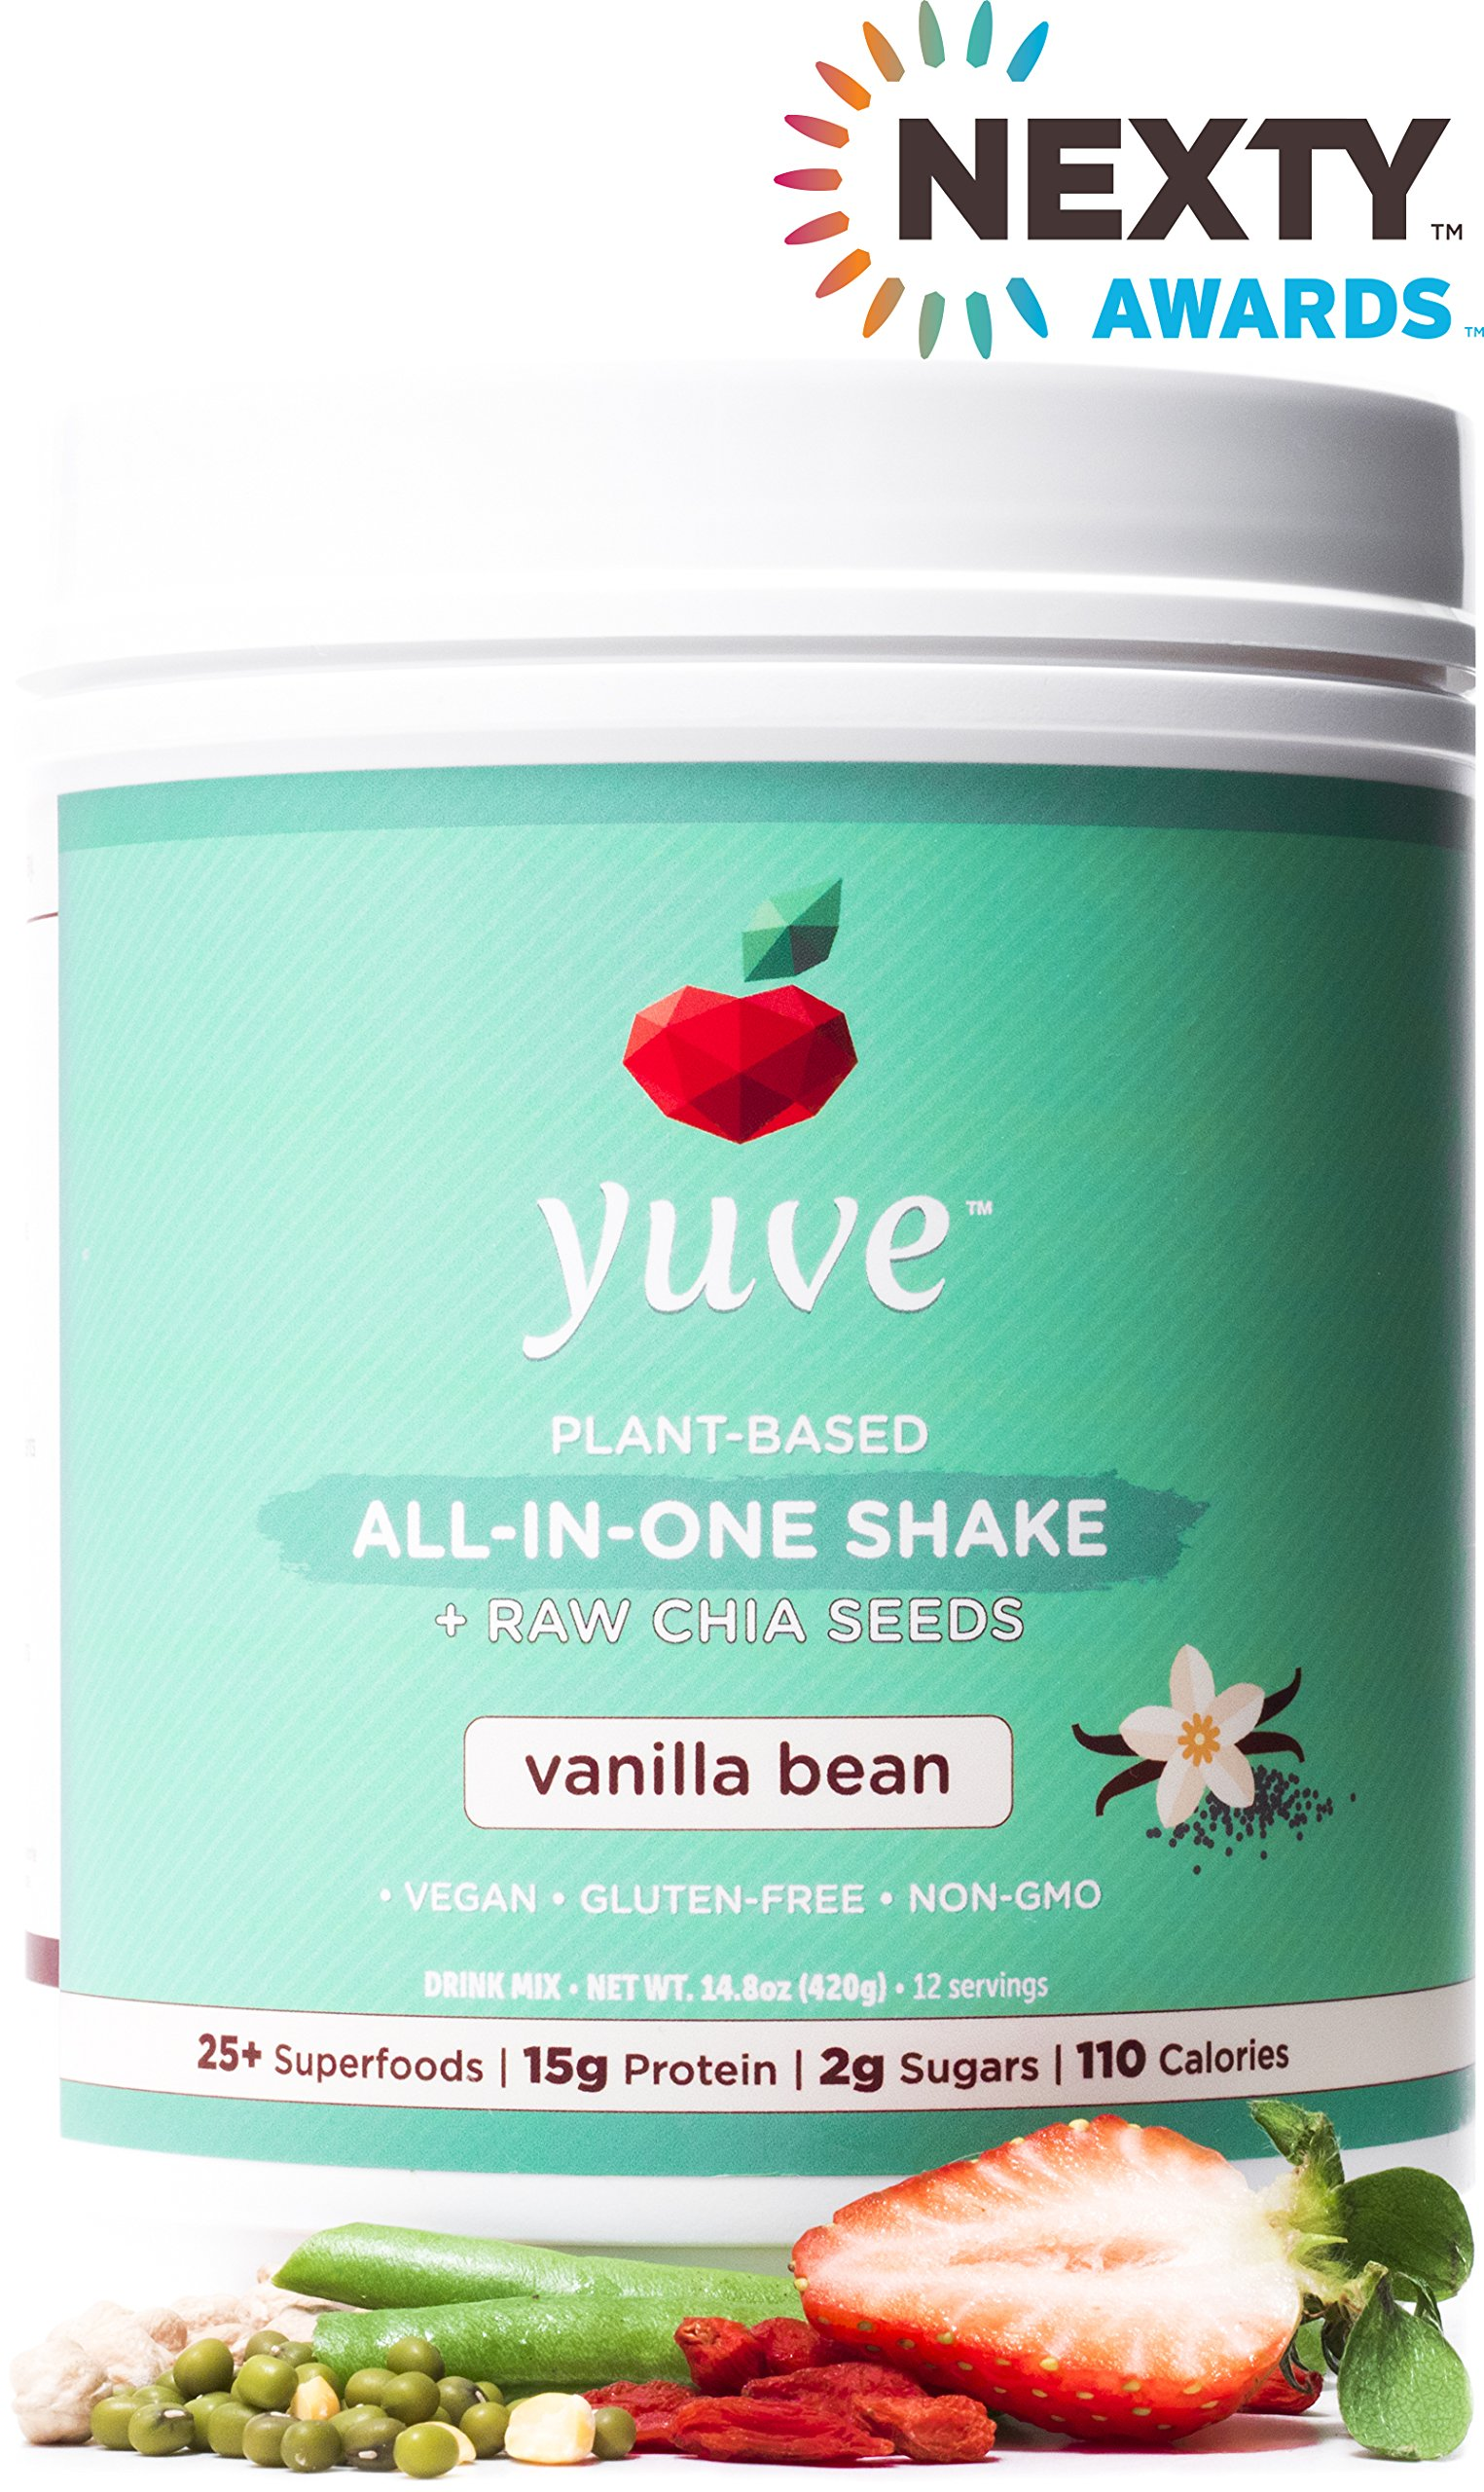 Yuve Vegan Protein Powder with Superfoods - Award Winning Taste - Complete Nutritional Shake - Natural Greens, Plant Based, Non-GMO, Gluten, Dairy, Soy and Lactose Free (Vanilla Tub) 14.8oz/420g by Yuve